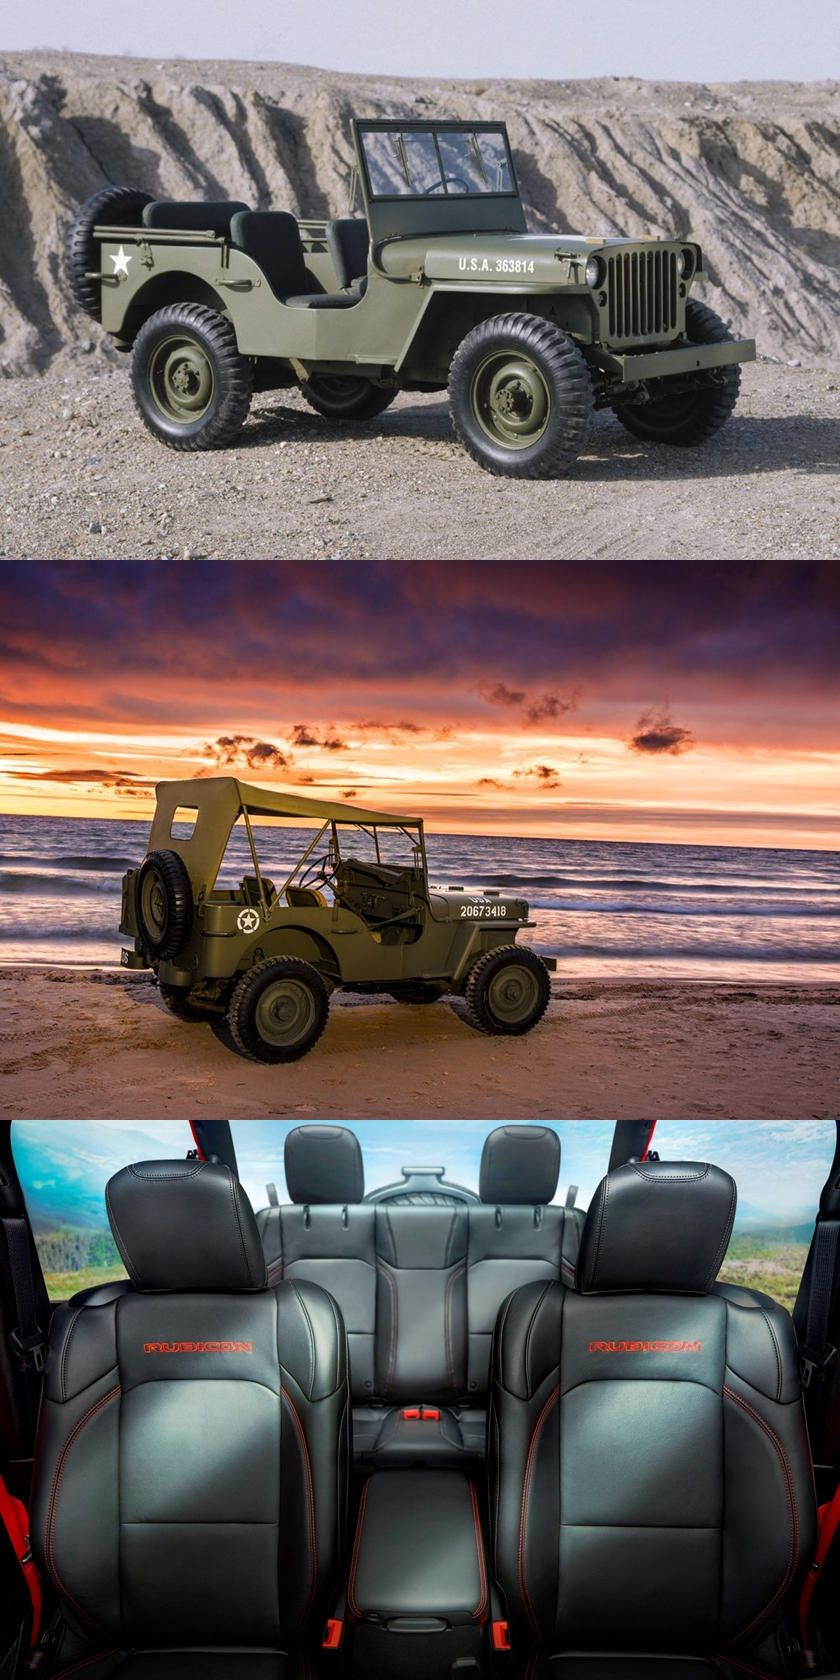 History Of The Jeep Wrangler In Five Generations Over 70 Years And Five Generations The Wrangler Is Still The Off Roading Jeep Wrangler Jeep Jeep Wrangler Yj